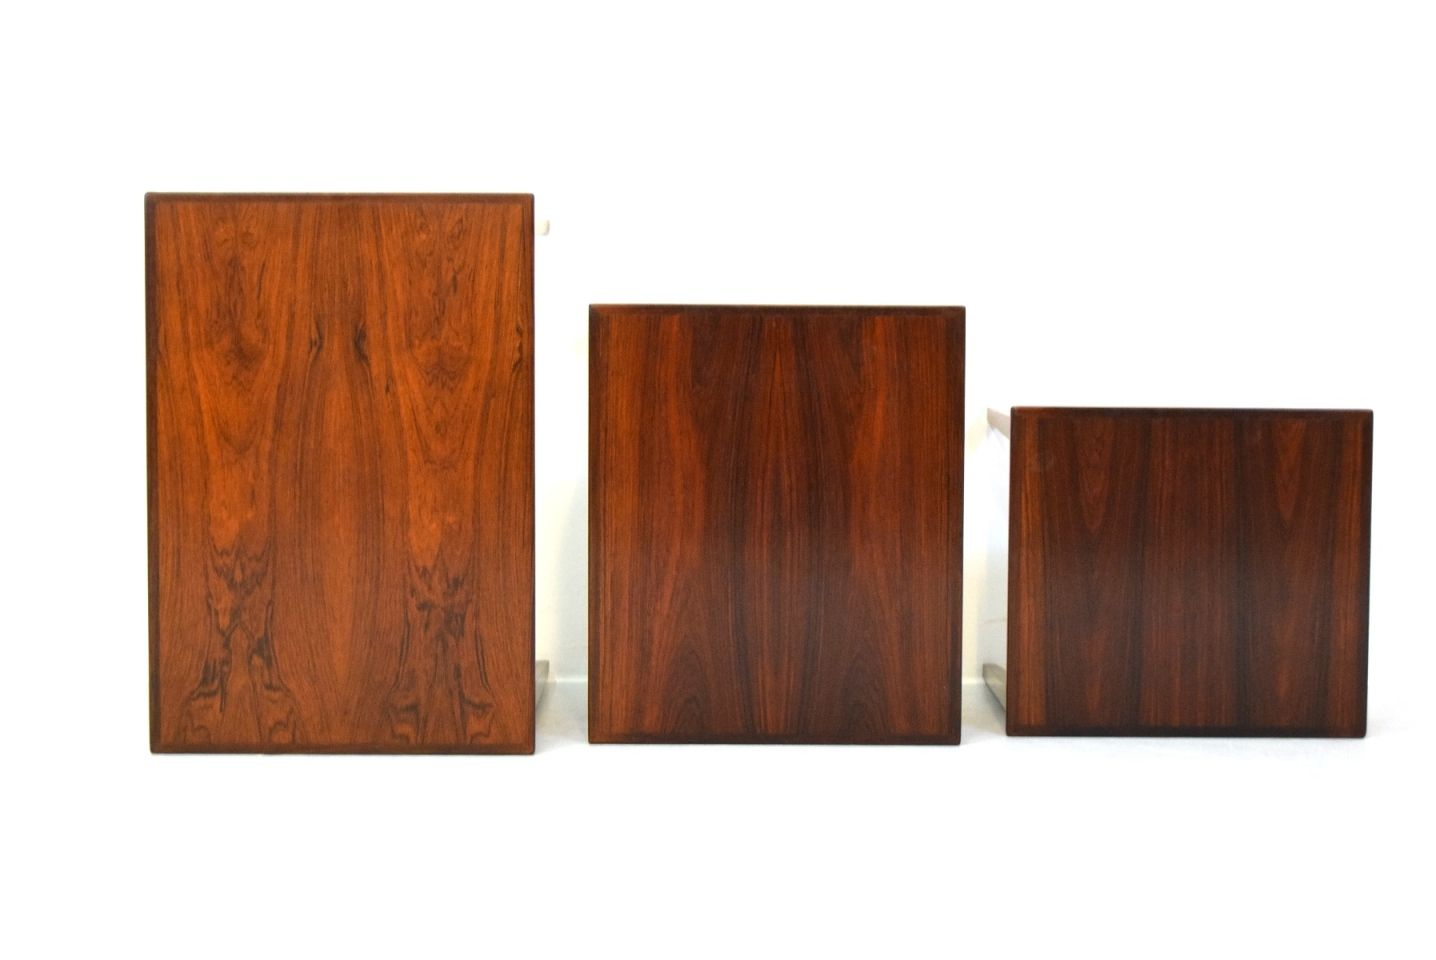 Wonderful image of Vintage Danish Rosewood Nesting Tables from VM Møbler Set of 3 for  with #B15017 color and 1436x960 pixels